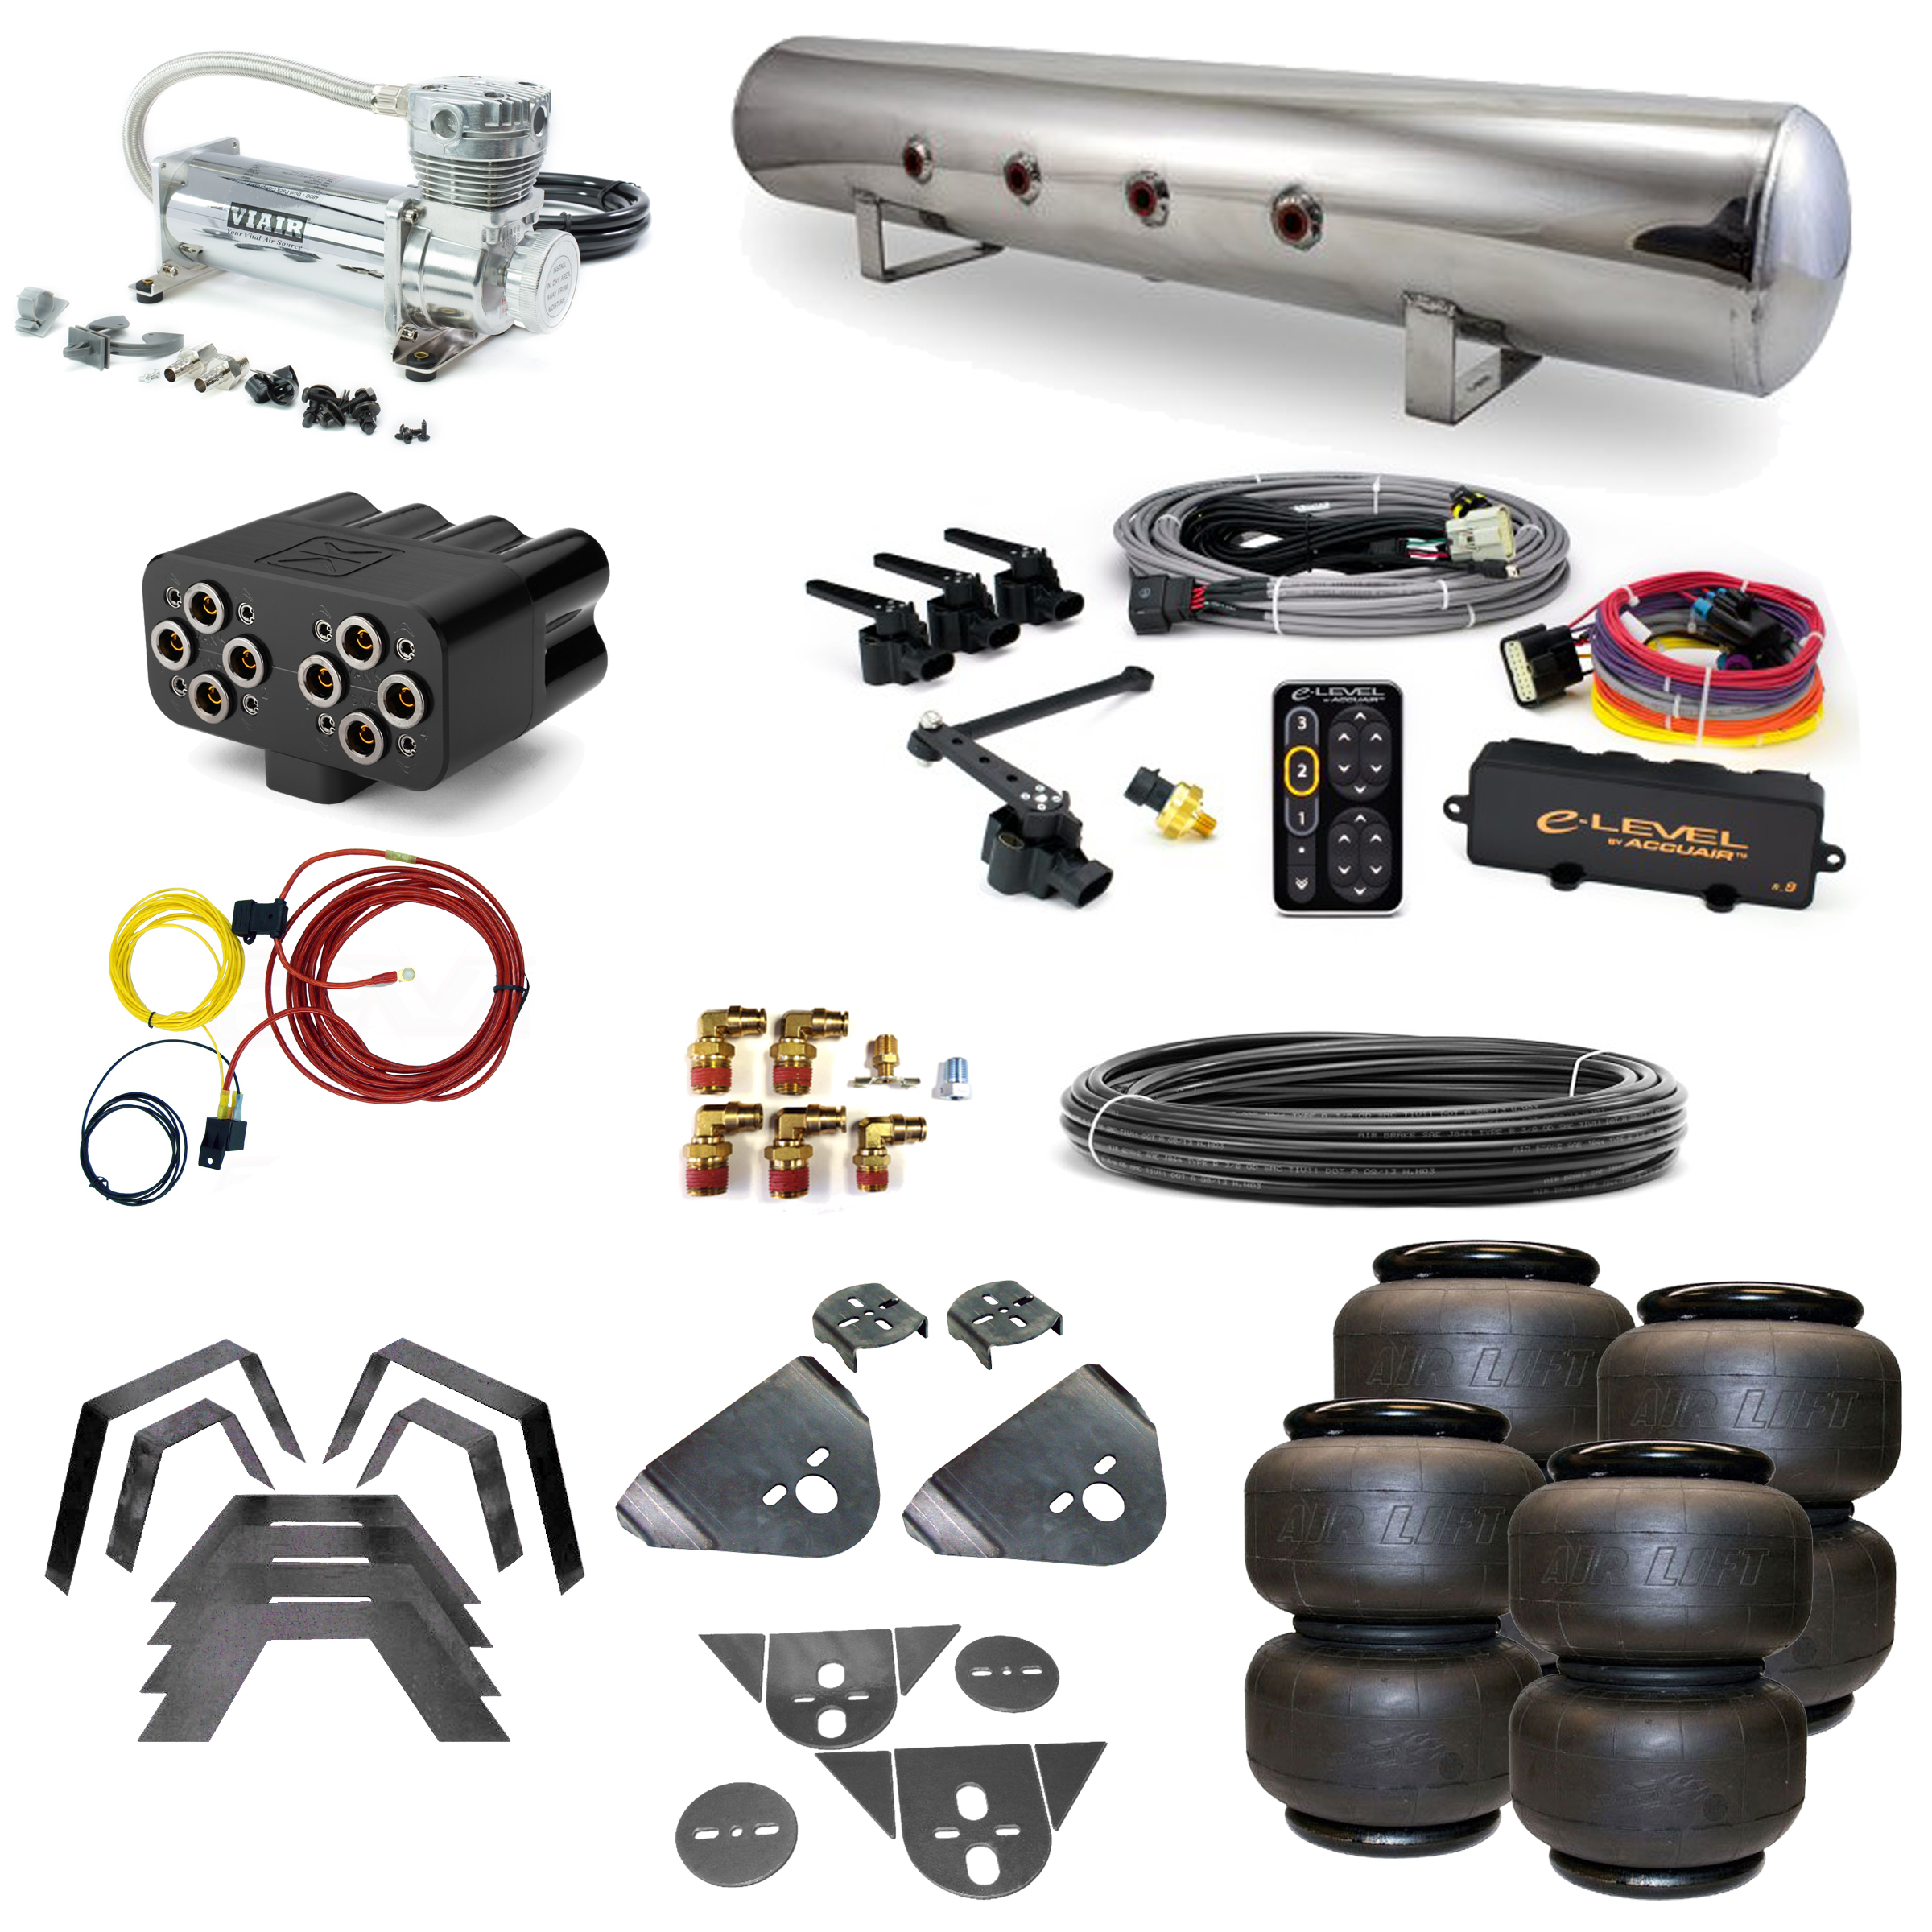 Stage 3 Air Suspension System with Accuair eLevel Management- 87-97 D21 Hardbody